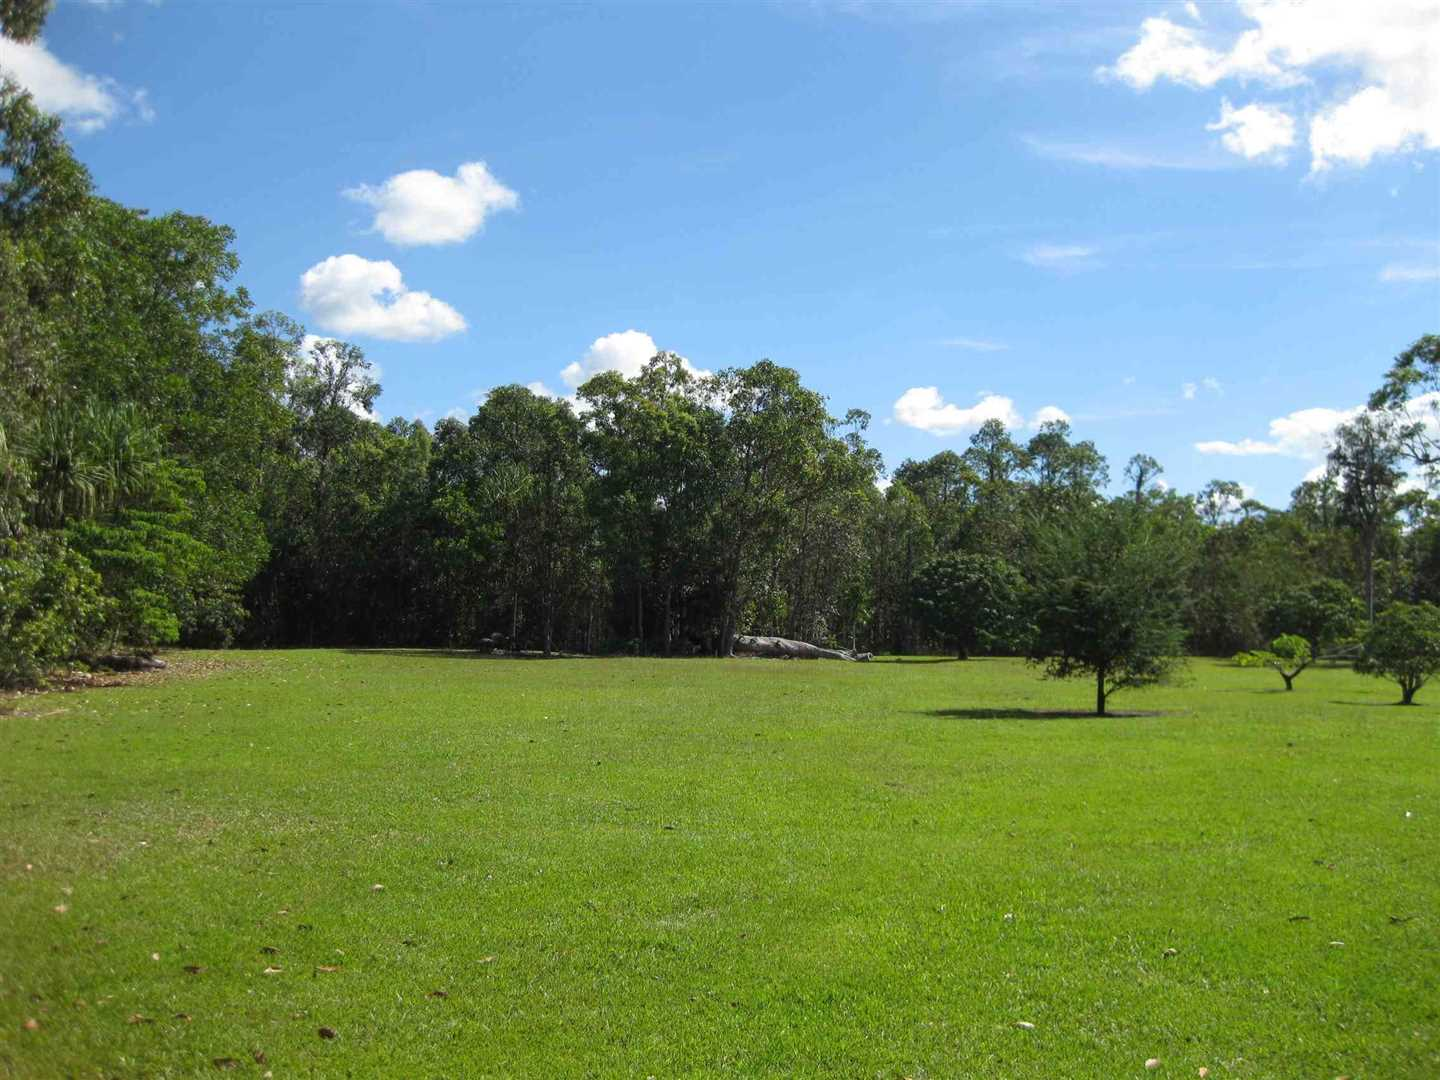 View of part of property showing part of cleared grassed area and some fruit trees, photo 3